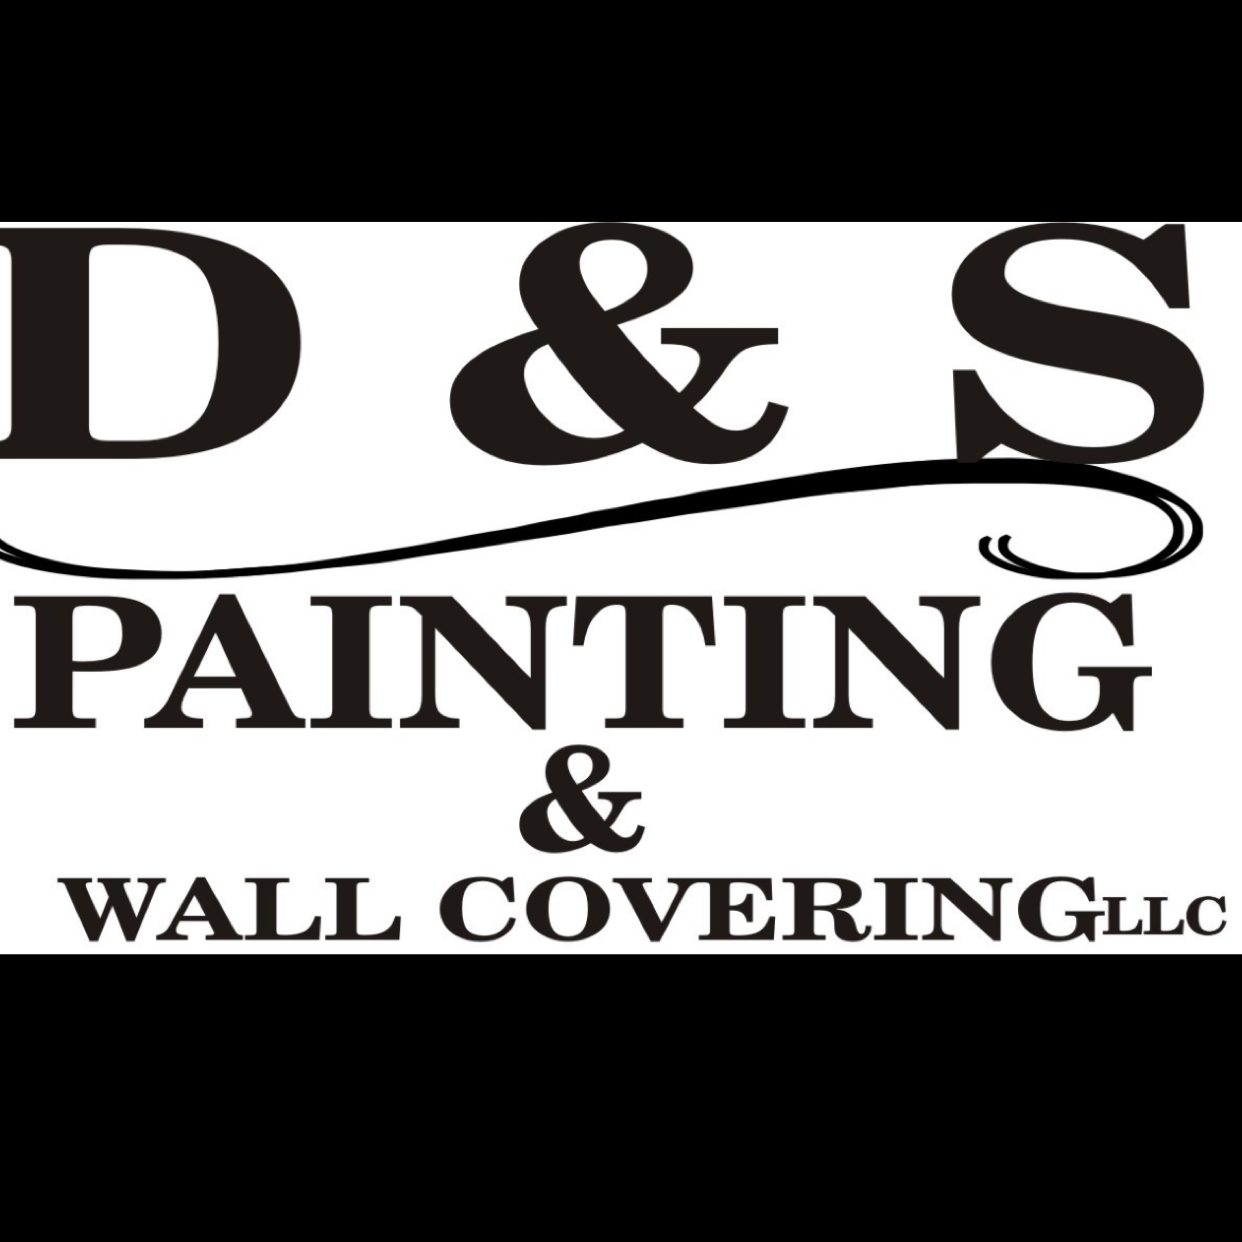 D&S Painting & Wall Covering LLC Reviews